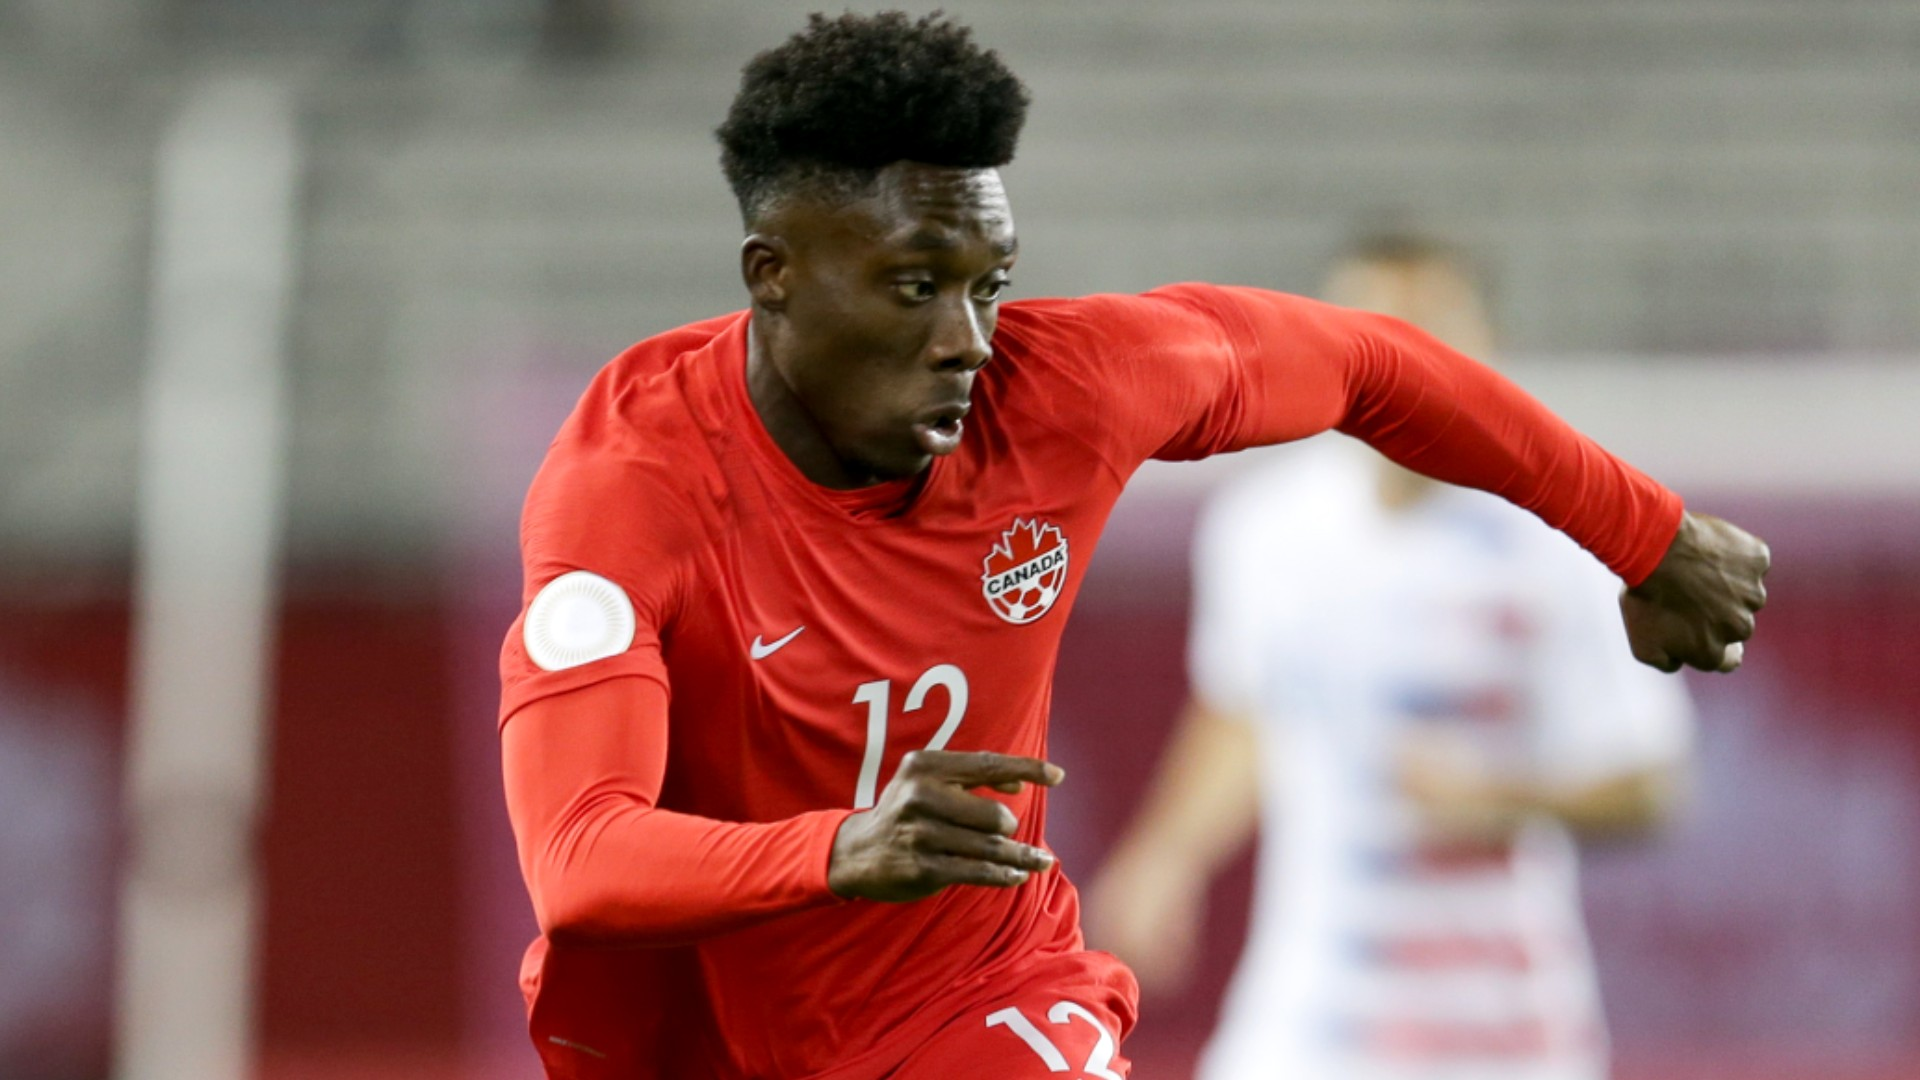 Canada vs. Aruba: Time, TV, streaming, stadium, prediction for CONCACAF World Cup qualifier - Sporting News